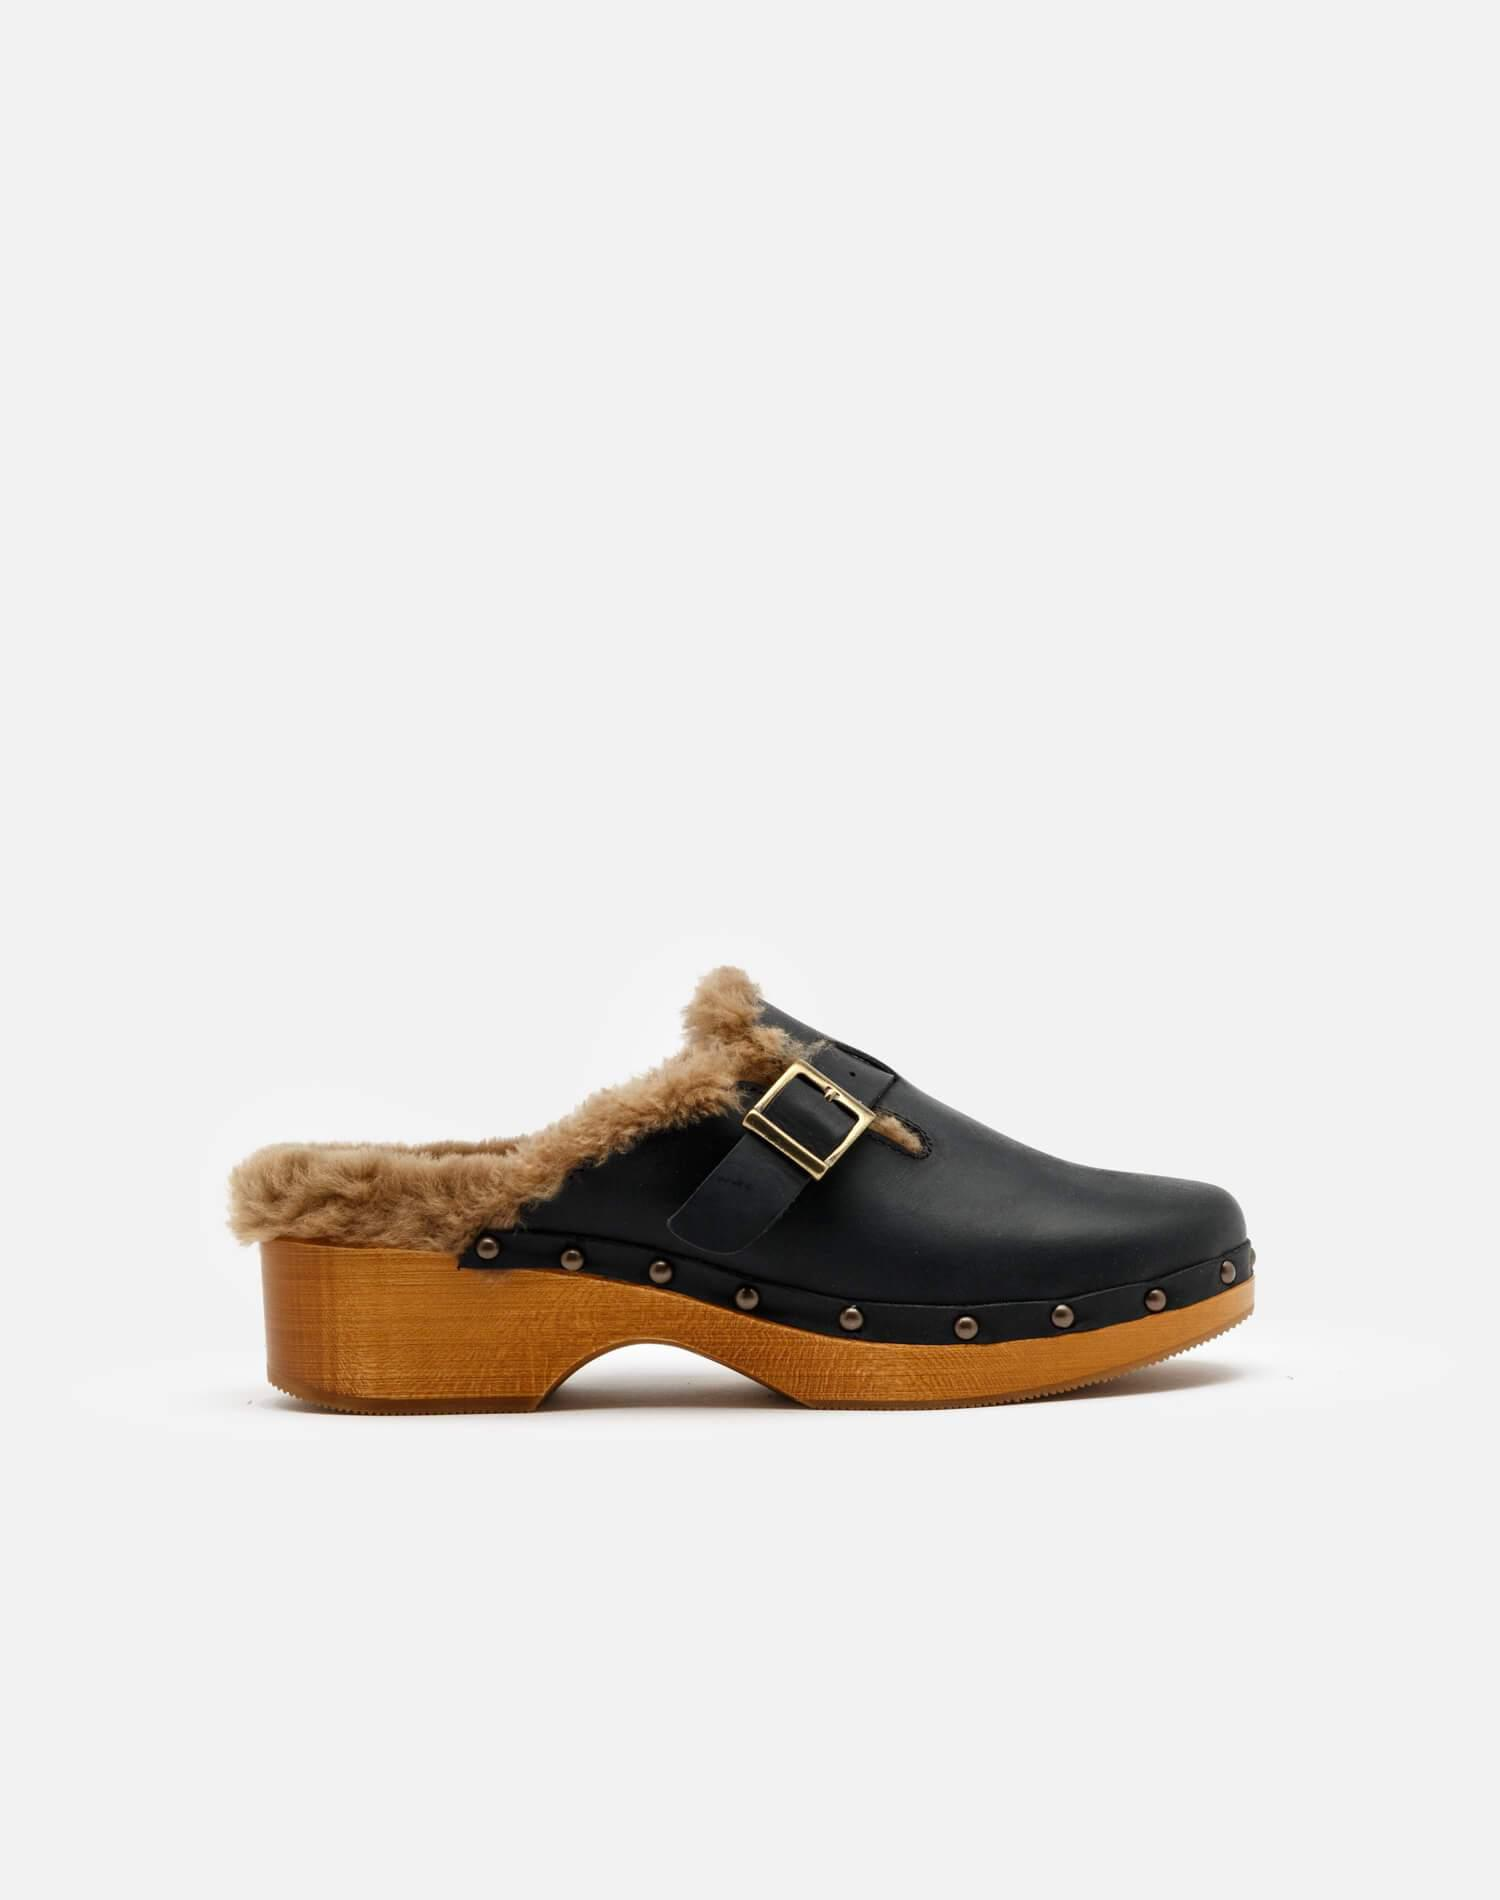 70s Shearling Clog - Black Leather and Shearling